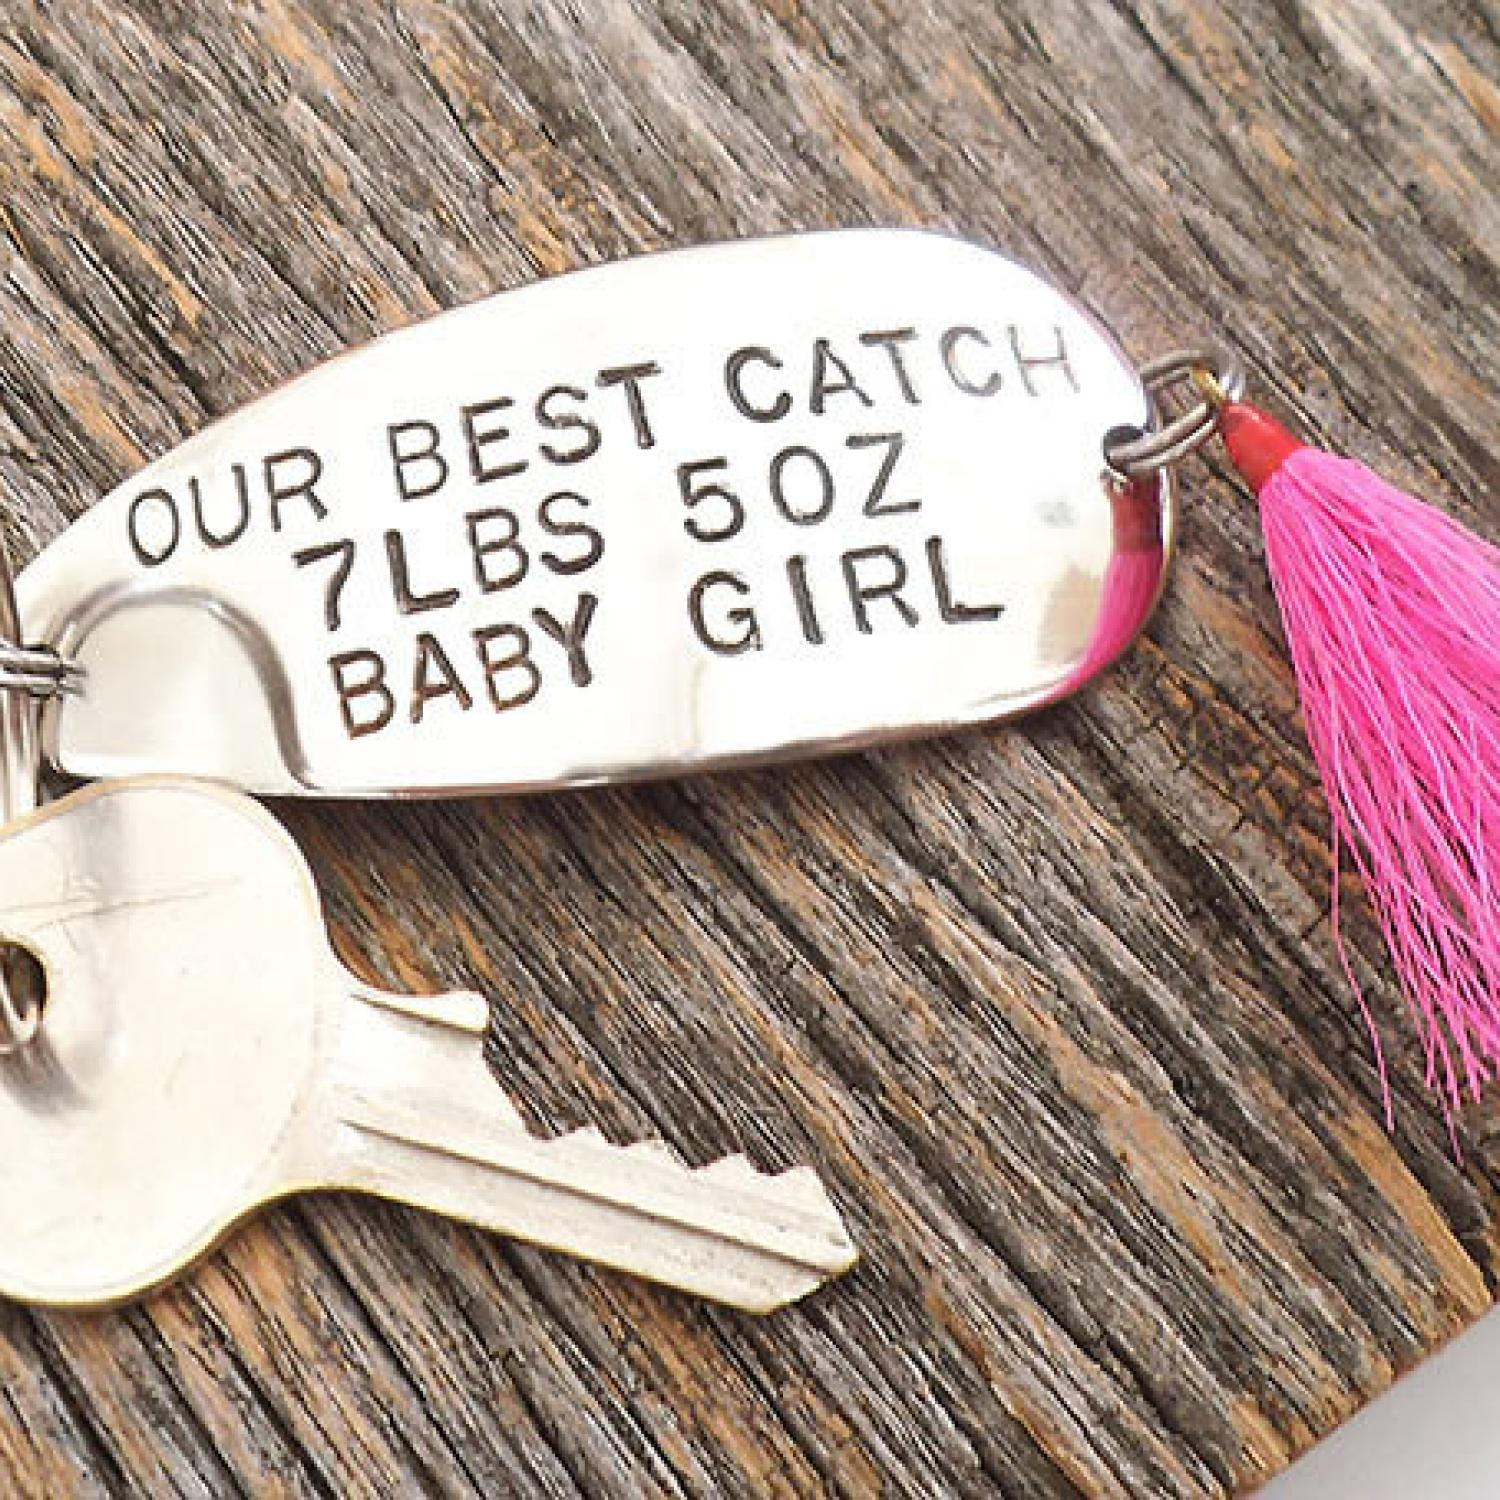 10 Precious Father's Day Gift Ideas from a New Baby | Parenting